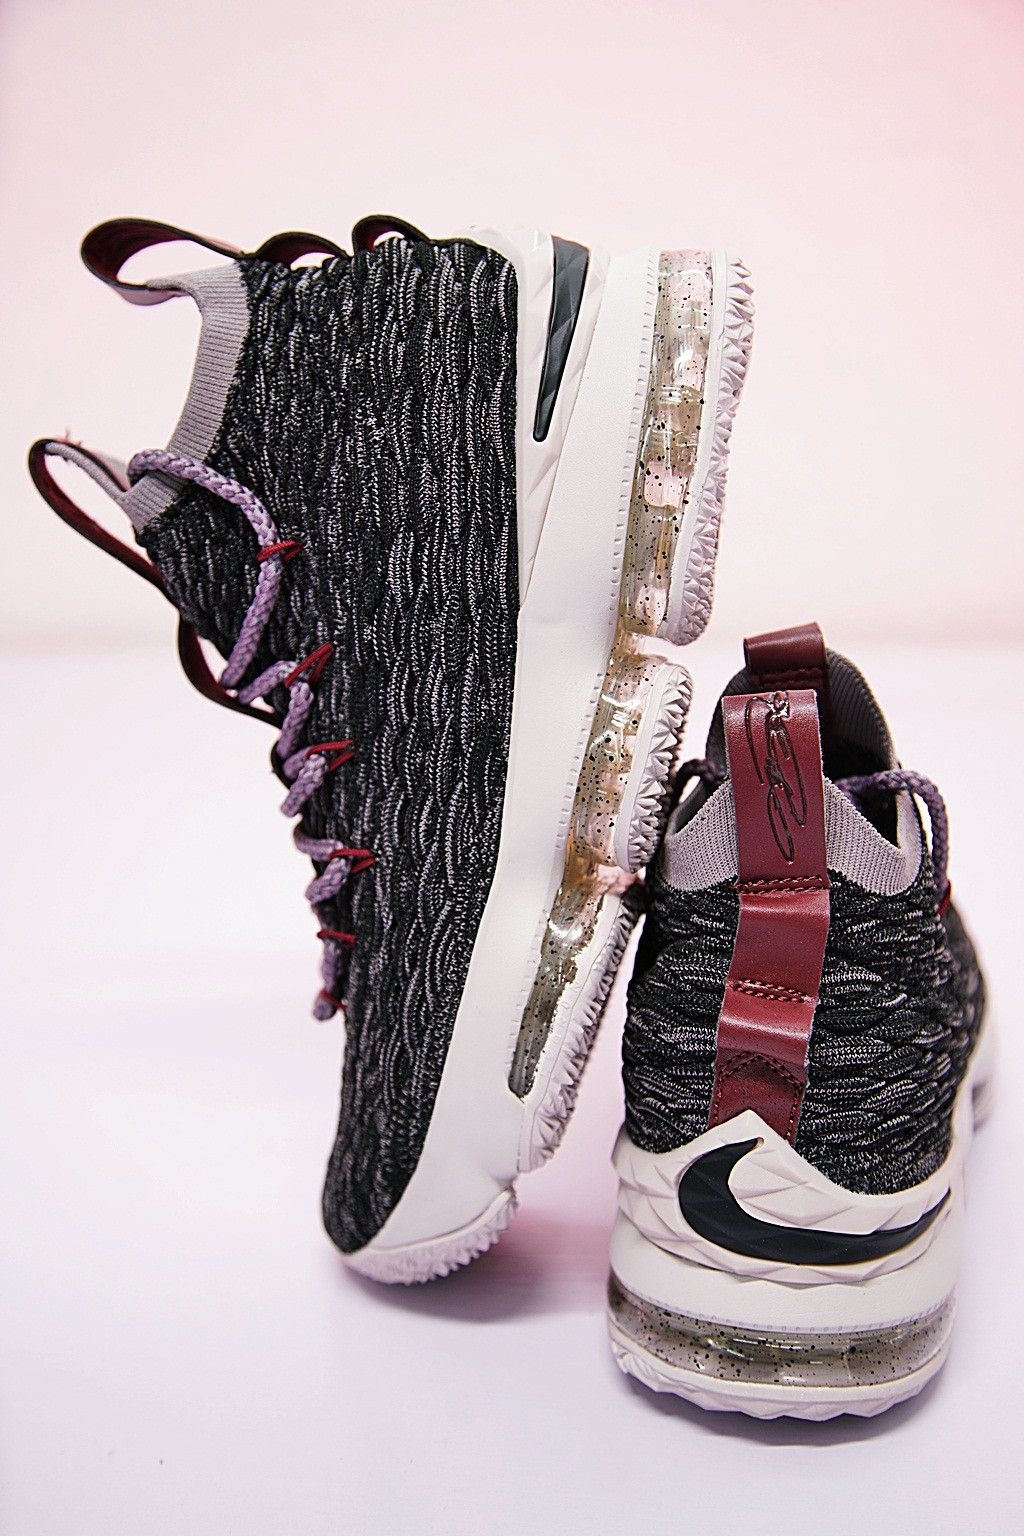 b4e6fcb6944 NIKE LEBRON 15 XV EP BLACK TAUPE GREY TEAM RED 897649 003  dame  uncledrew